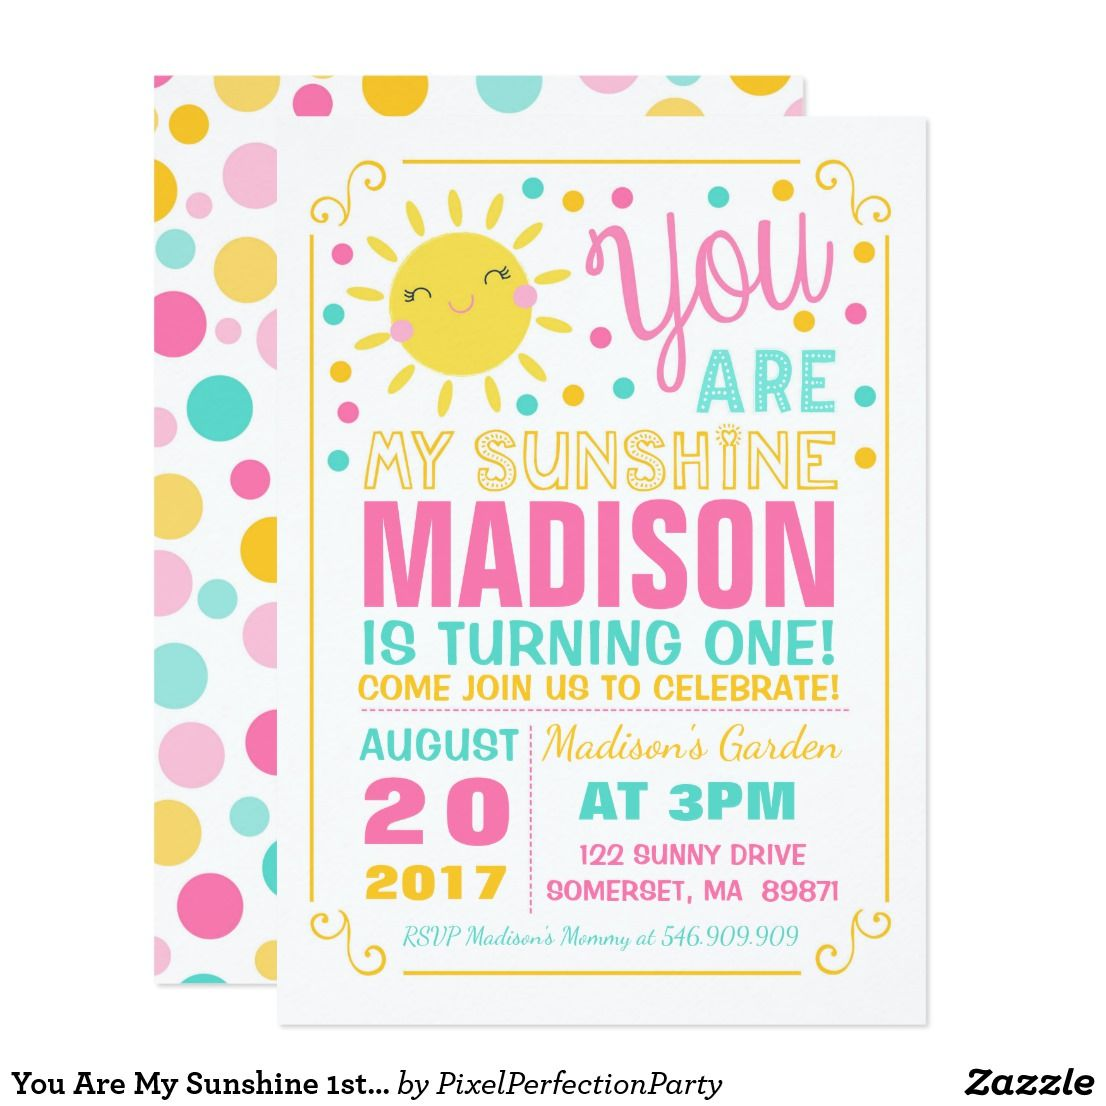 You are my sunshine 1st birthday party invitation stopboris